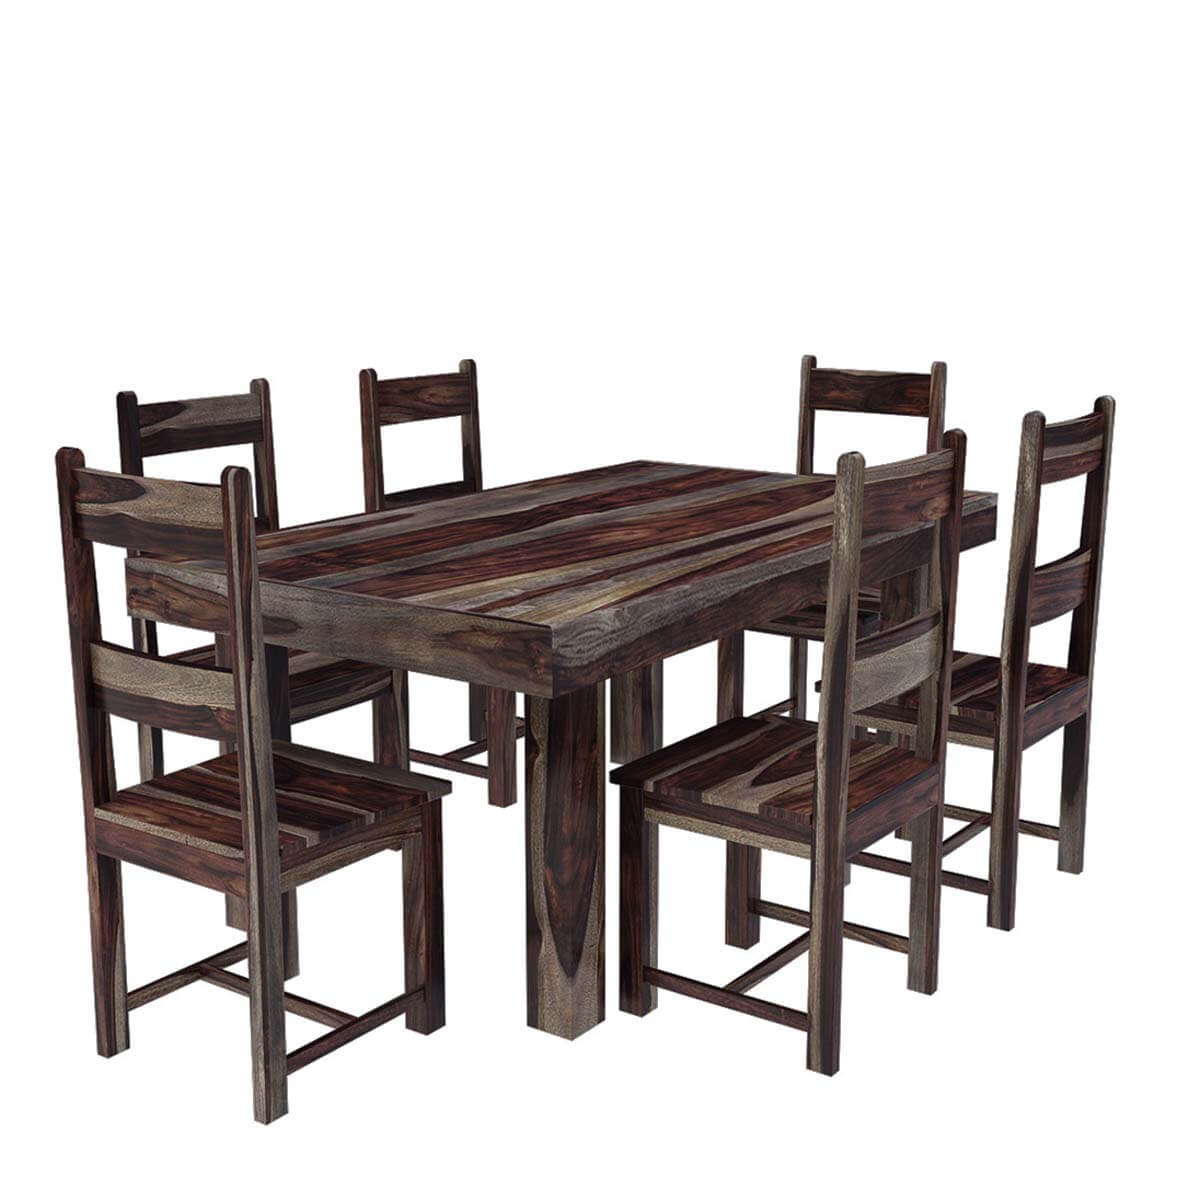 Frisco modern solid wood casual rustic dining room table and chair set - Wooden dining room chairs ...